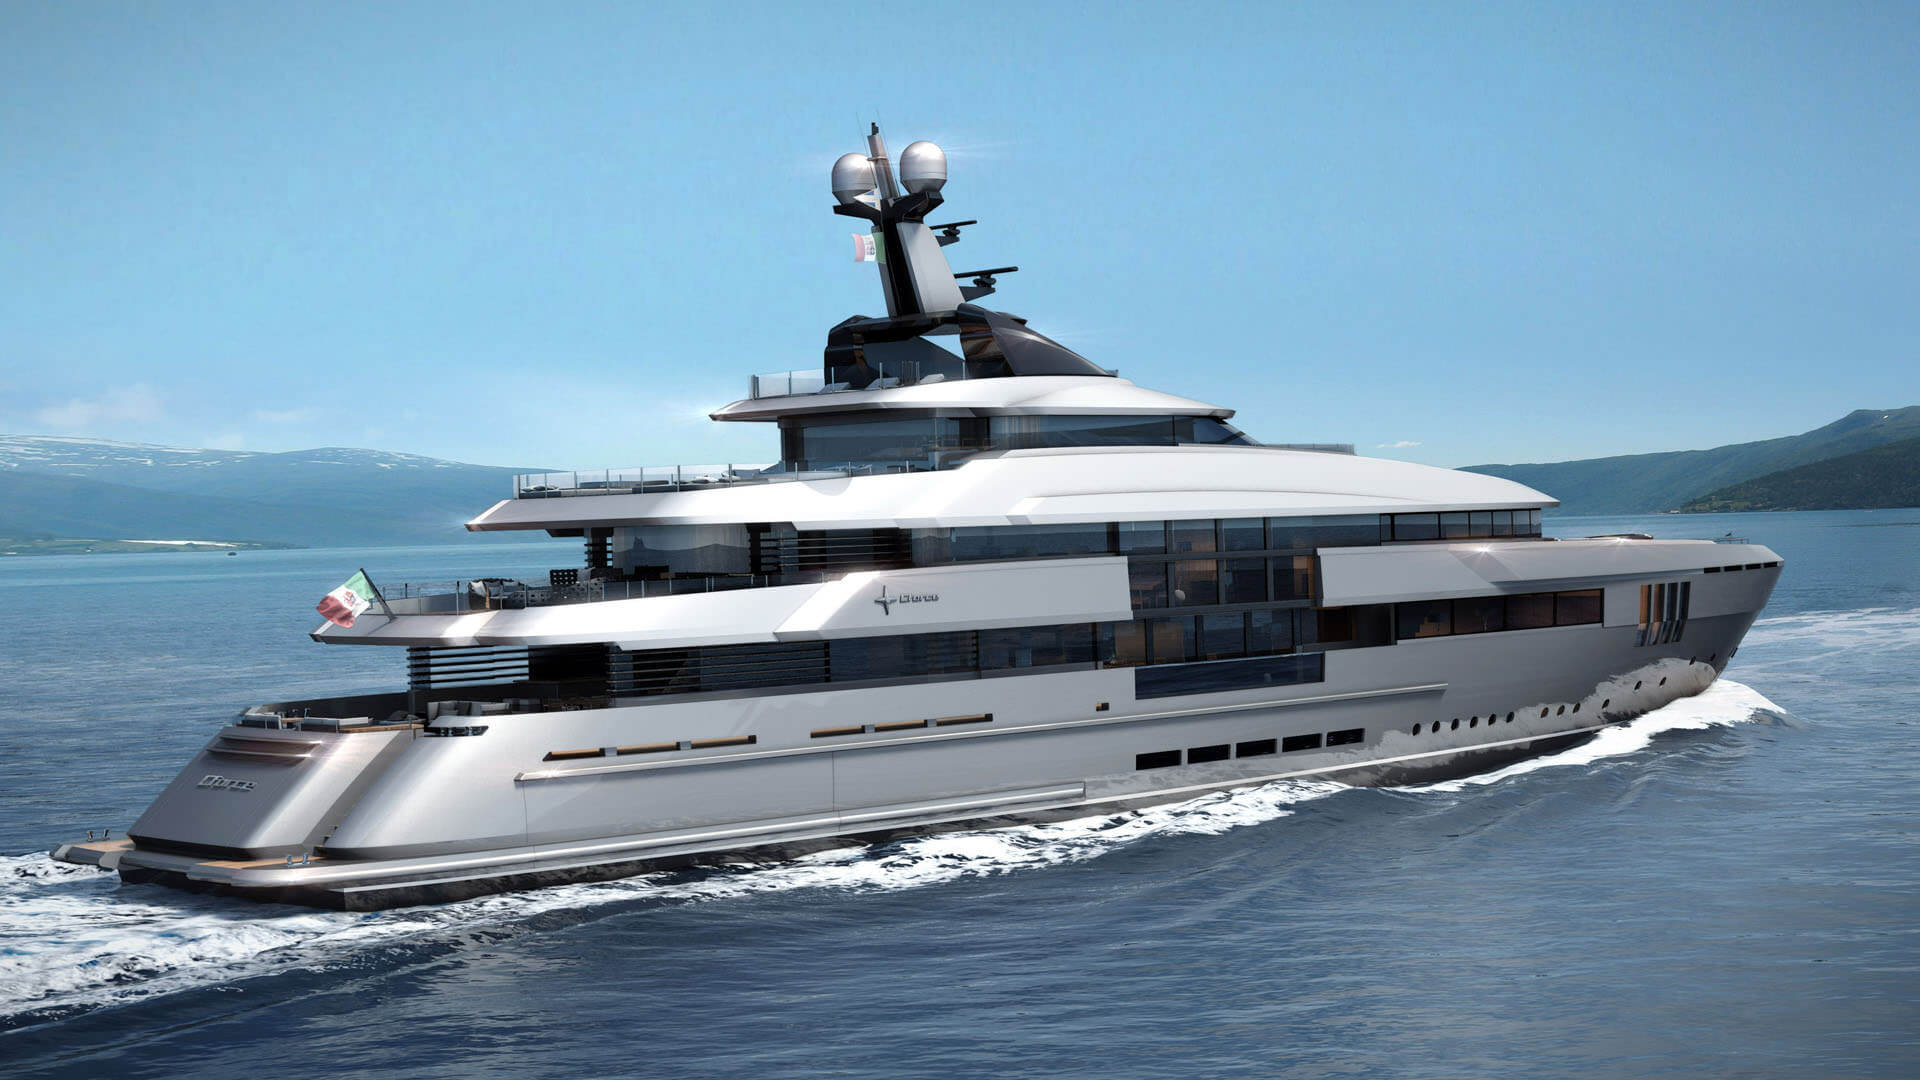 C Force - Admiral Yacht - Luxury Super Yacht